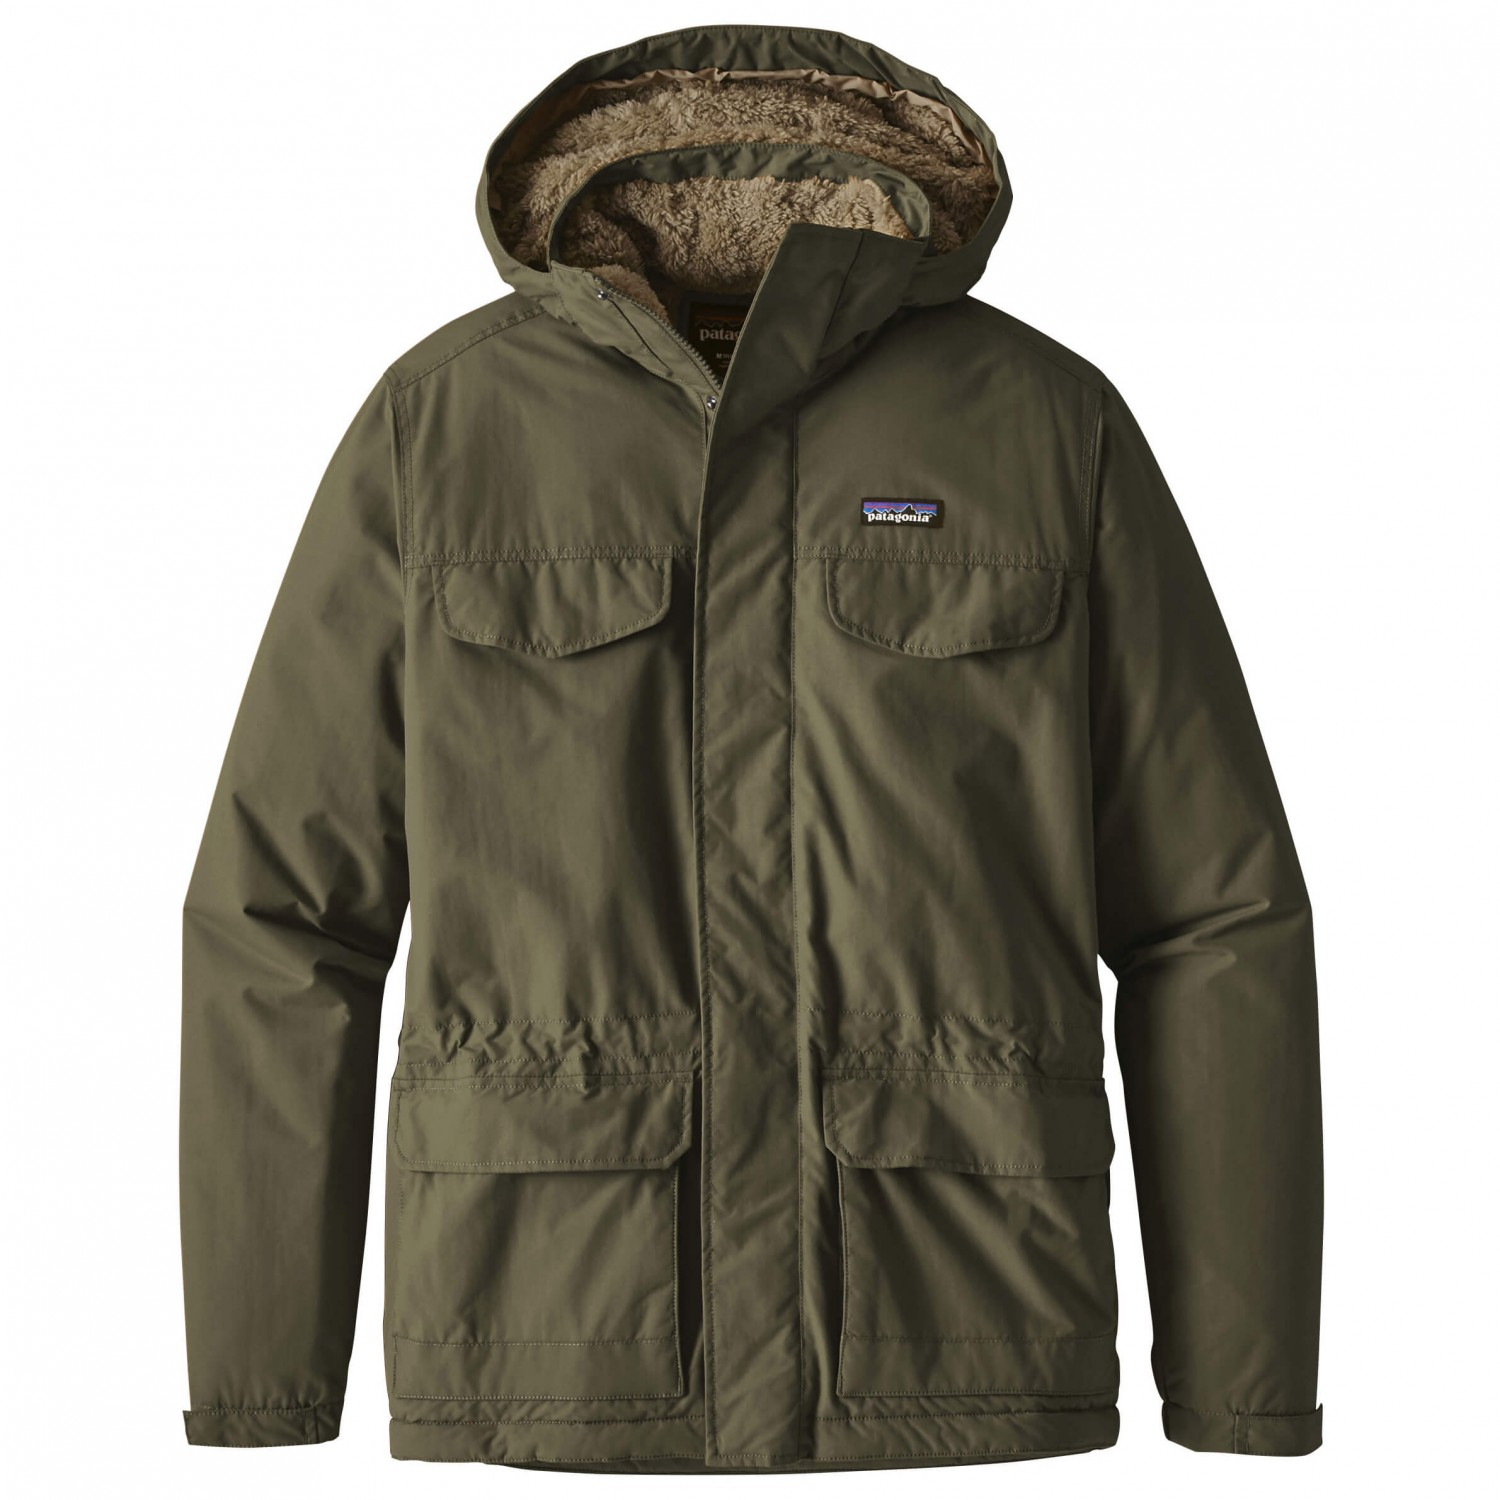 check out b771d 818a8 Patagonia Isthmus Parka - Giacca invernale Uomo | Porto ...